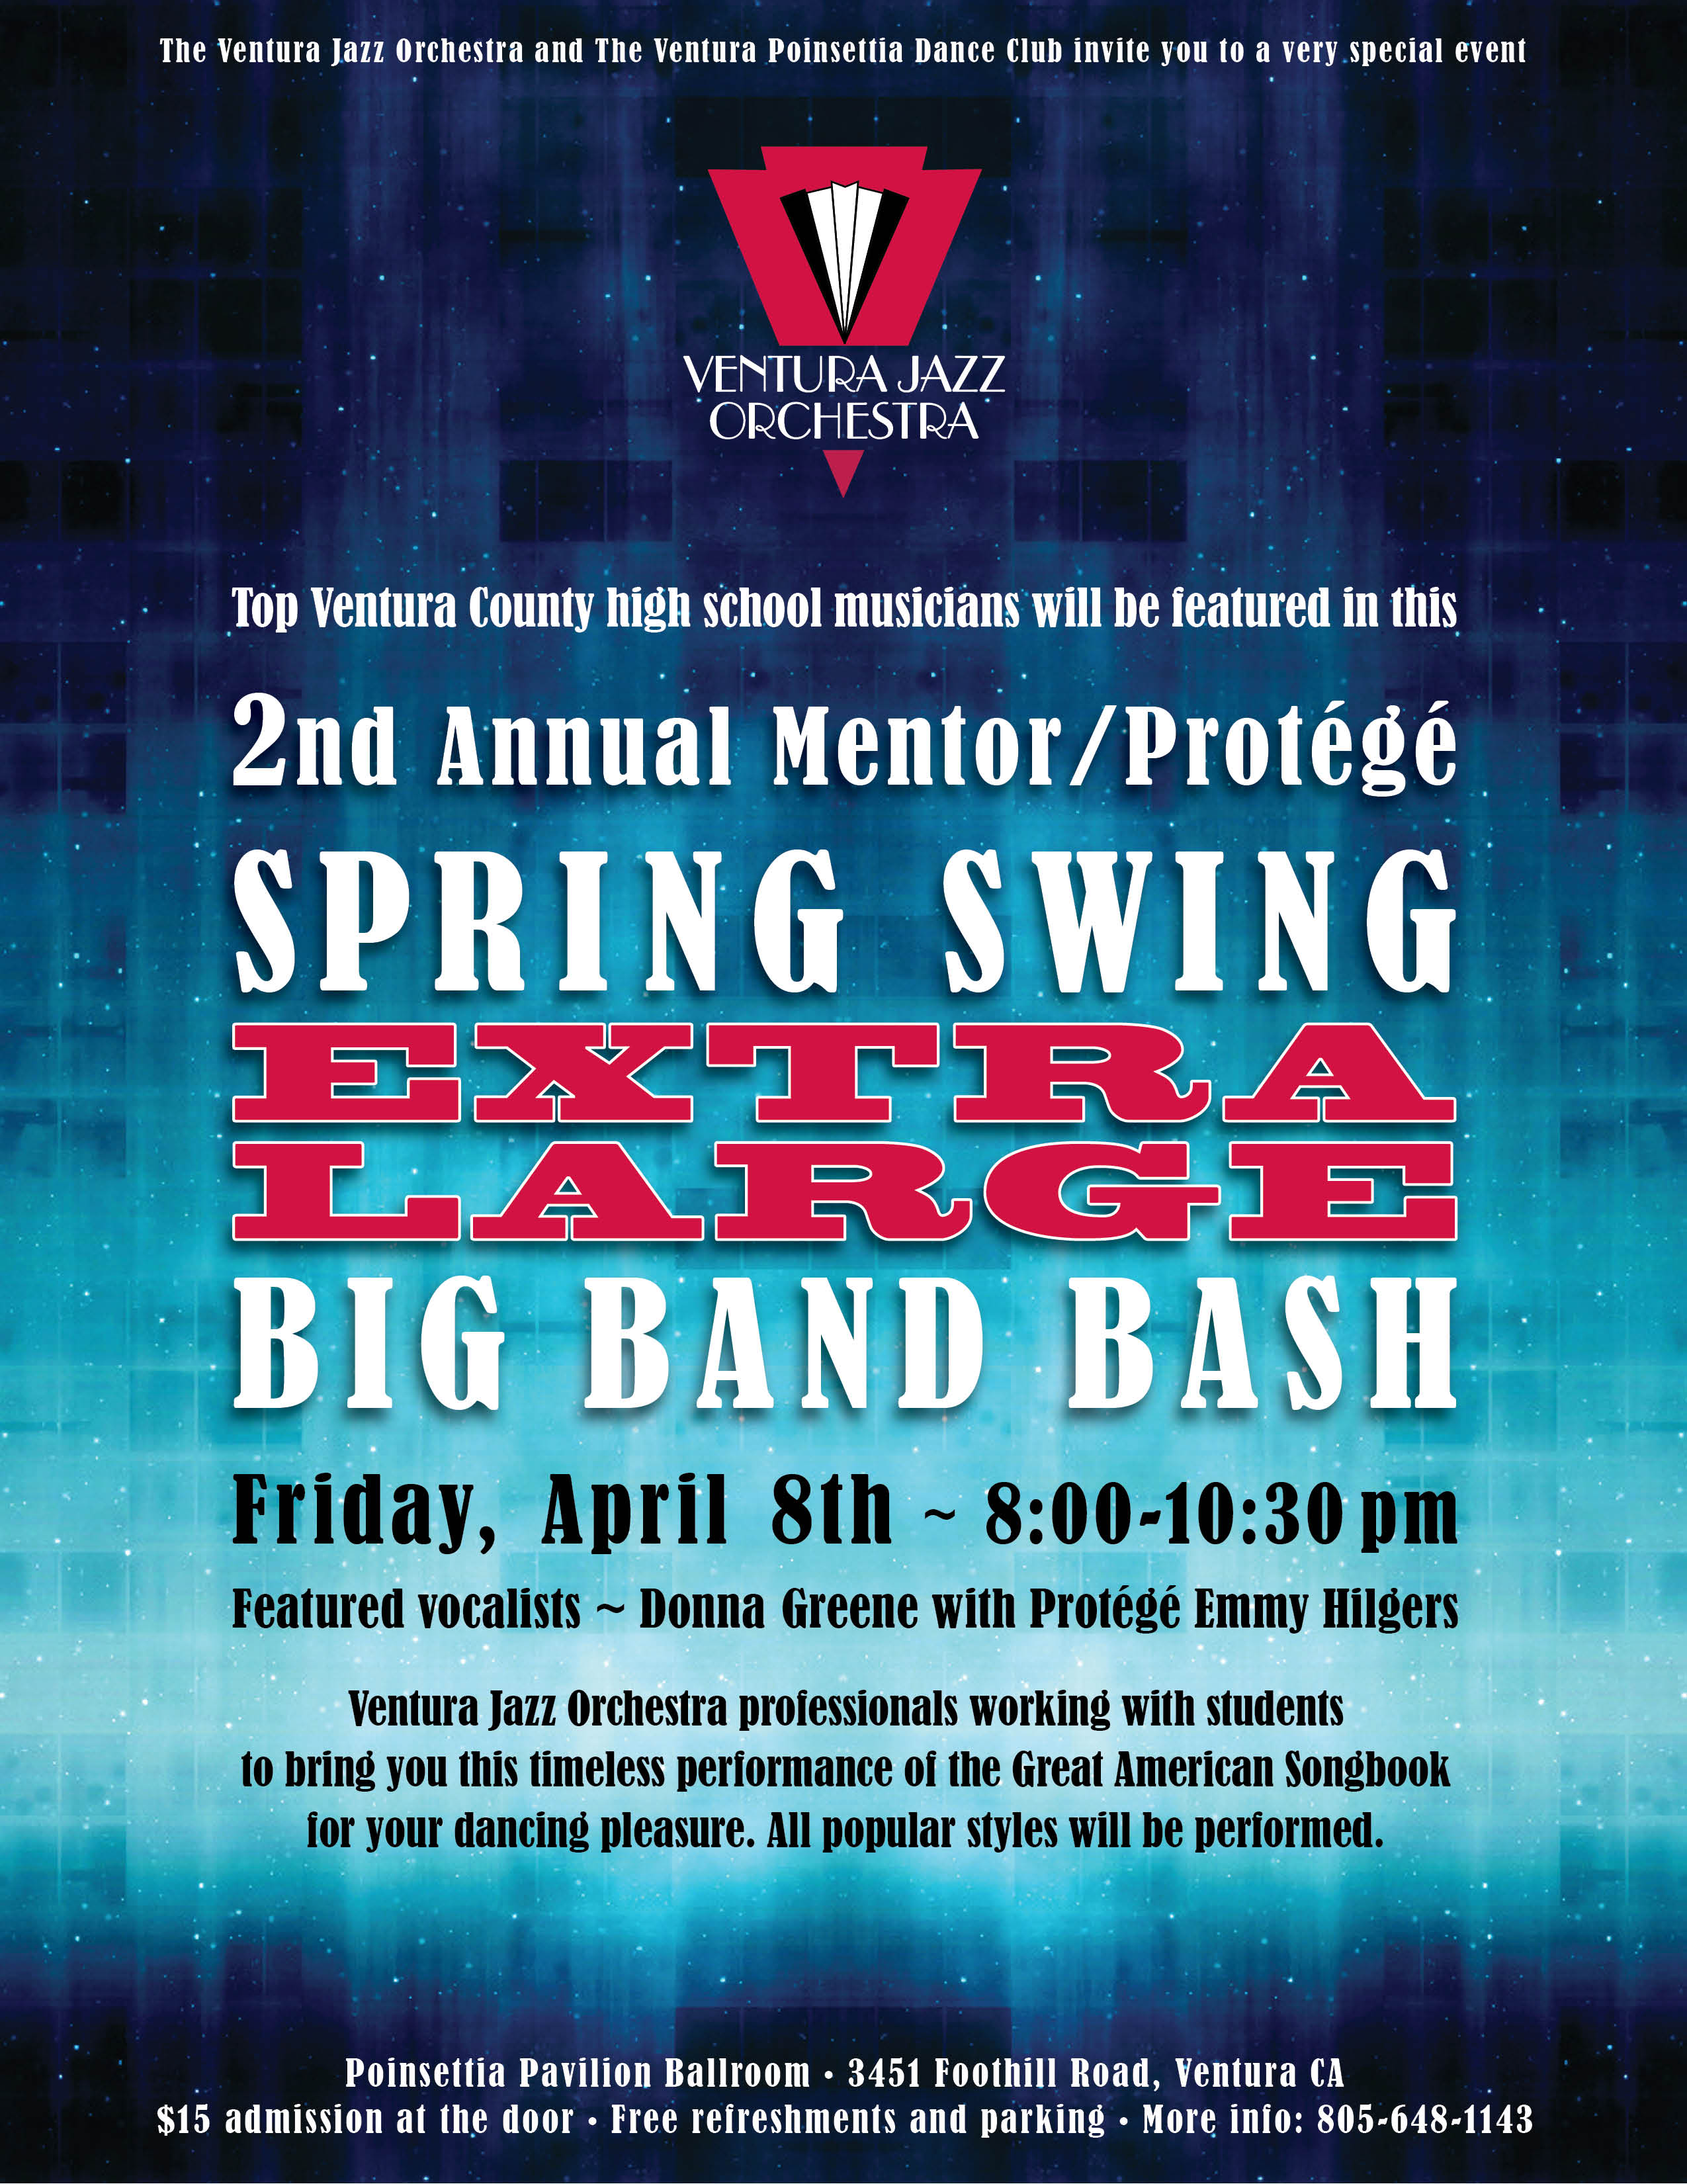 2nd Annual Mentor/Protege Extra Large Big Band Bash